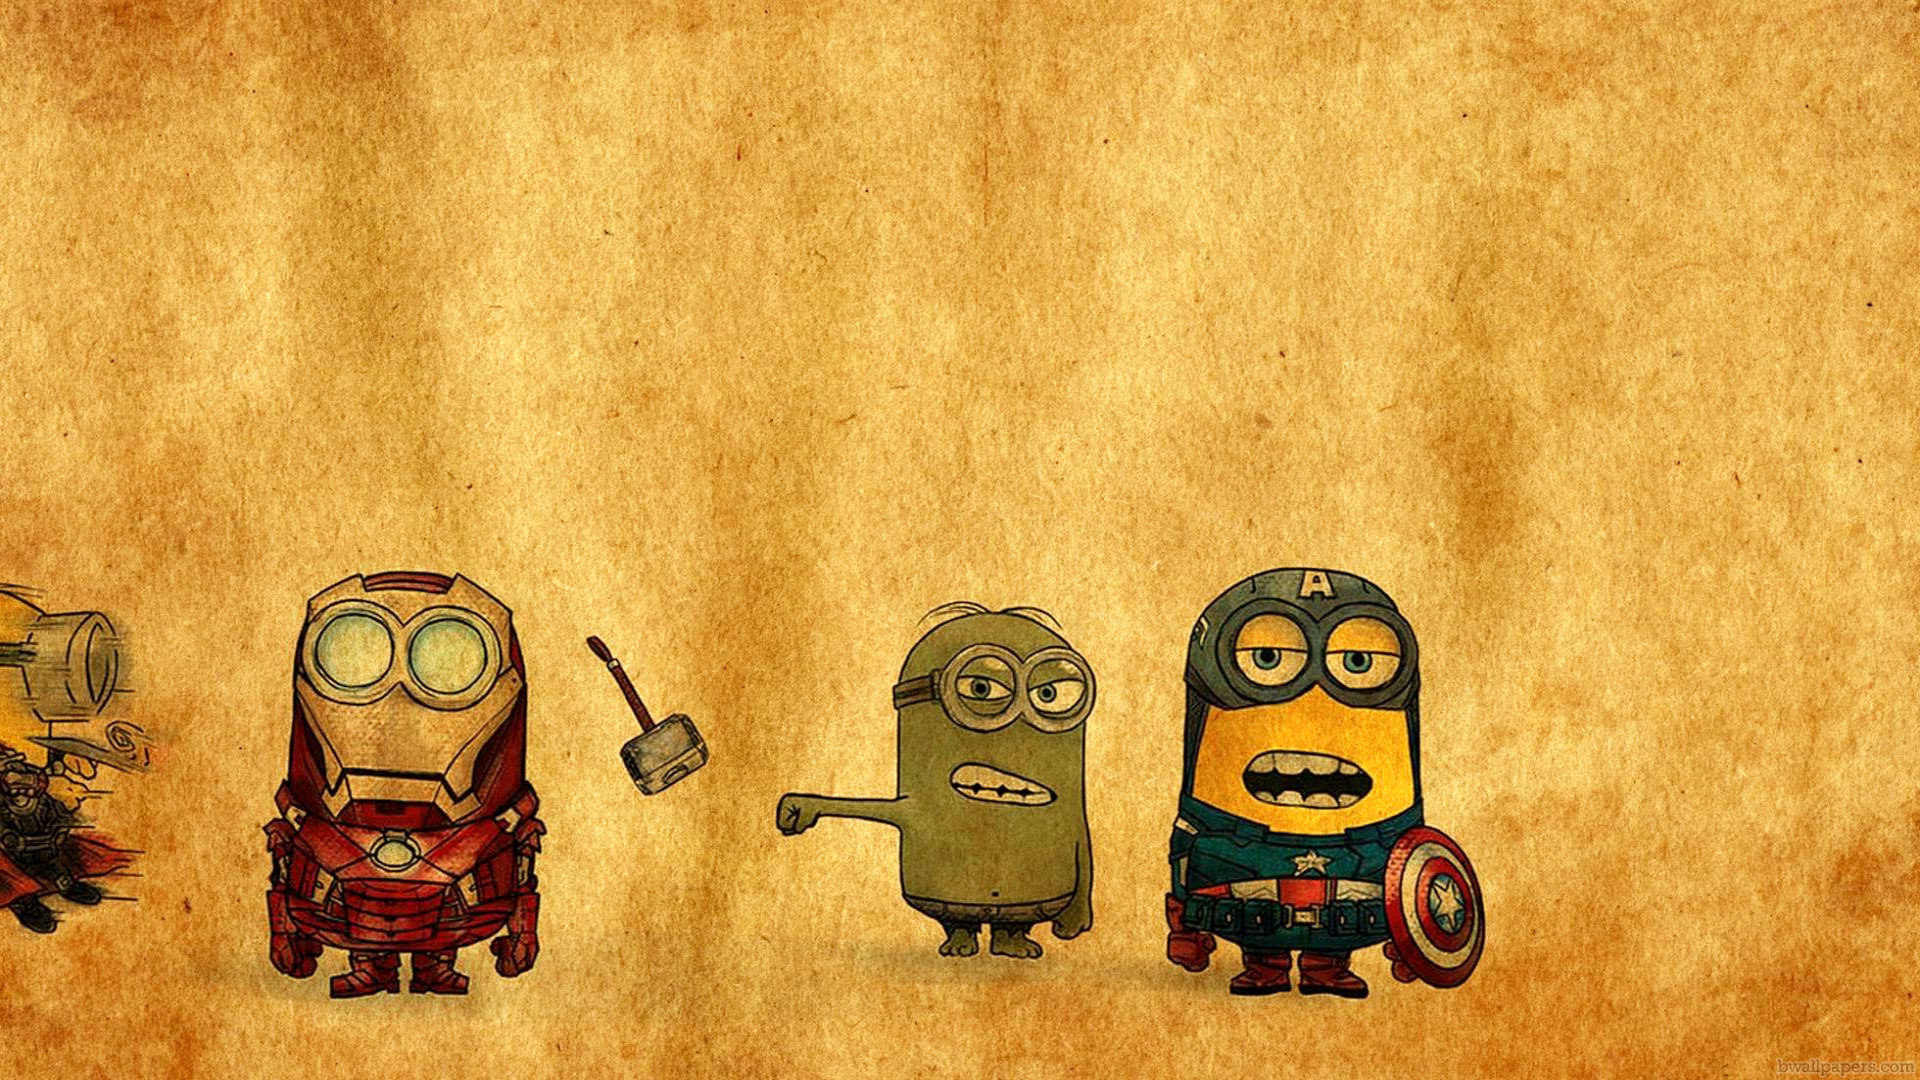 minion hd wallpaper - wallpaper, high definition, high quality